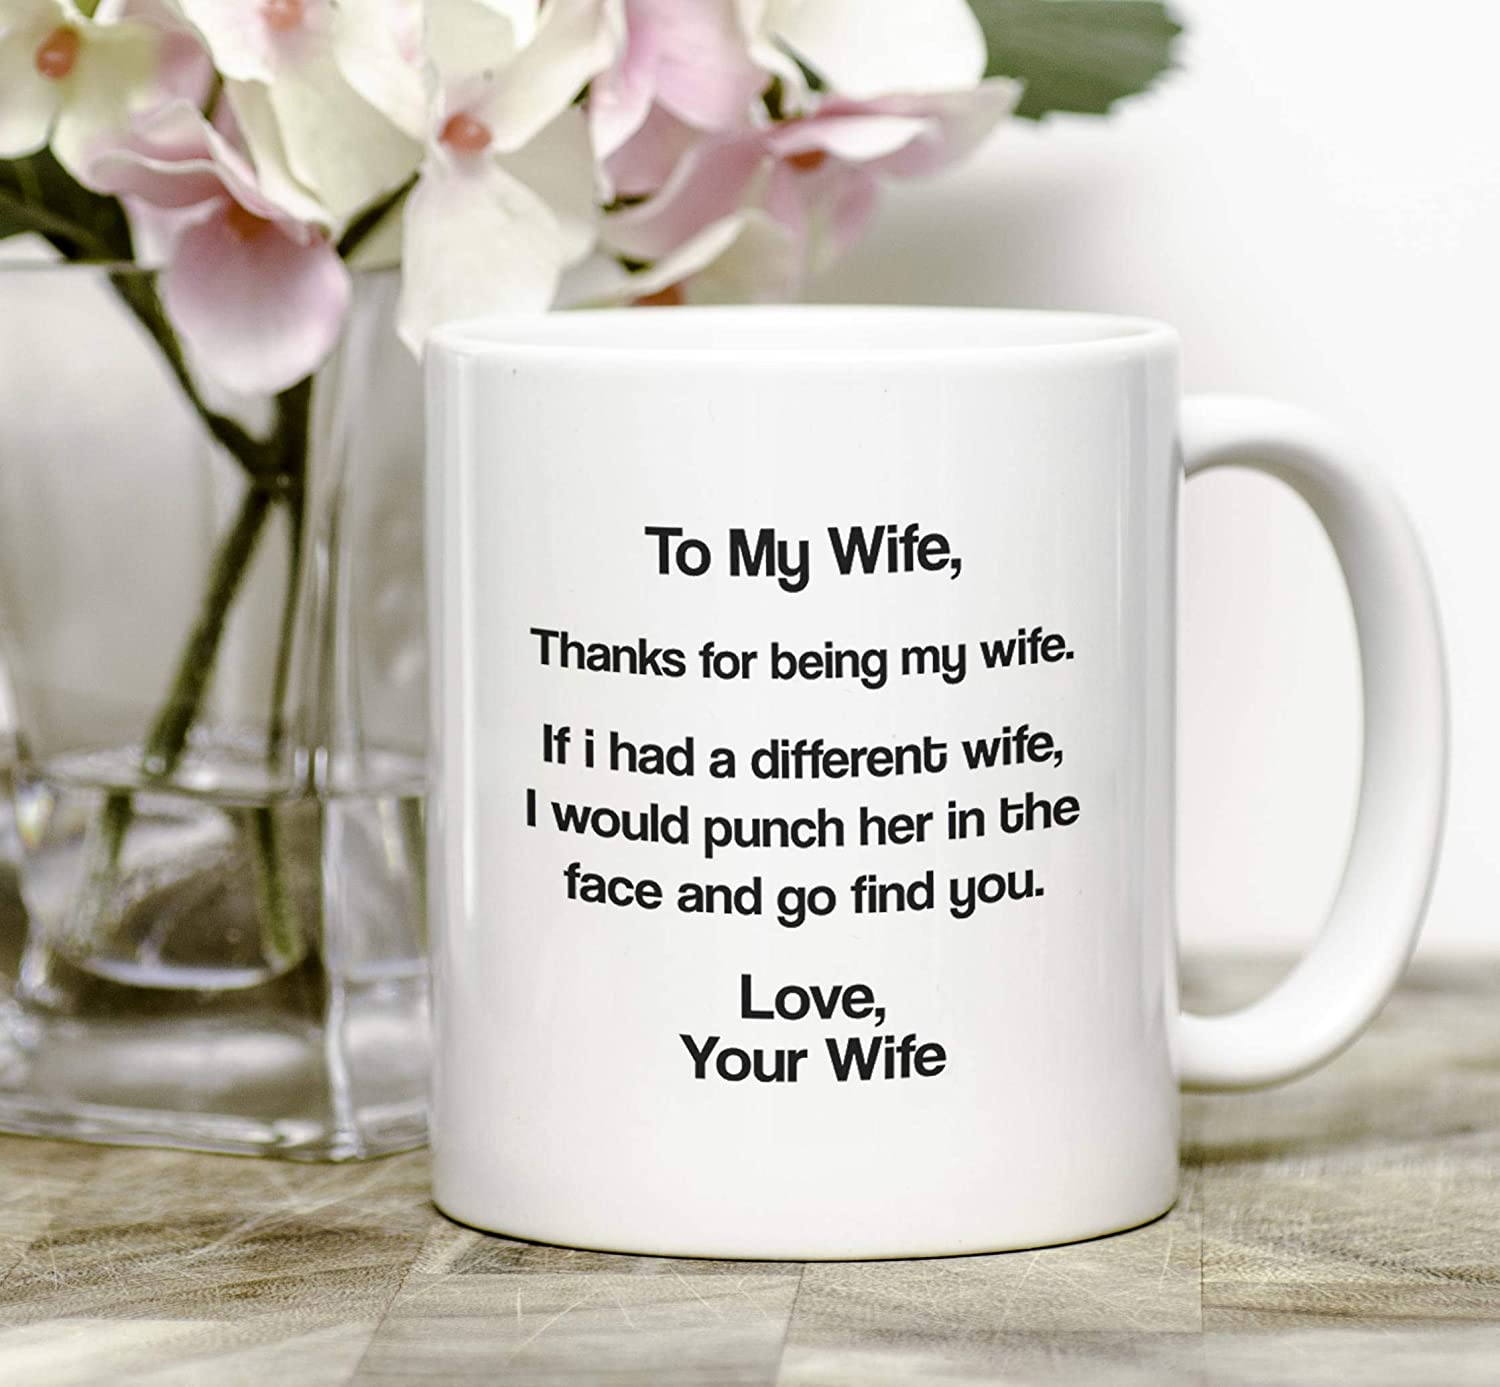 finding my wife a lesbian